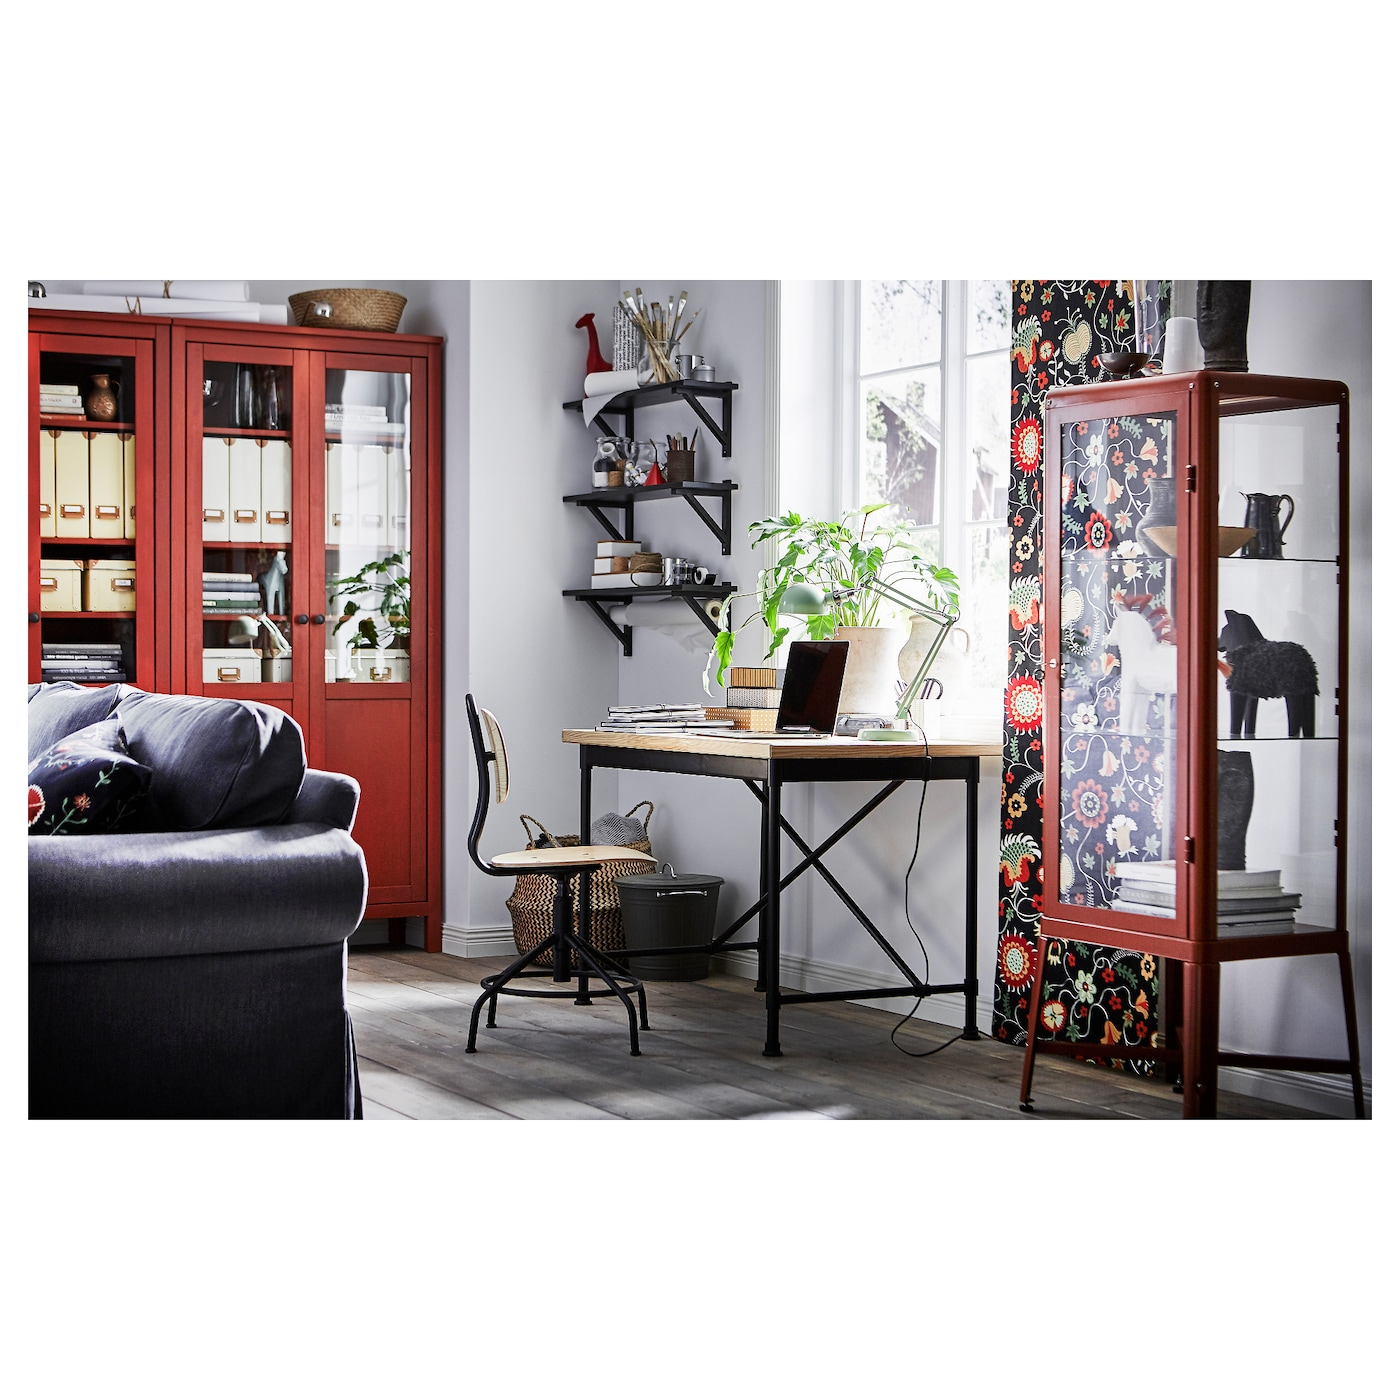 fabrik r glass door cabinet redbrown 57x150 cm ikea. Black Bedroom Furniture Sets. Home Design Ideas